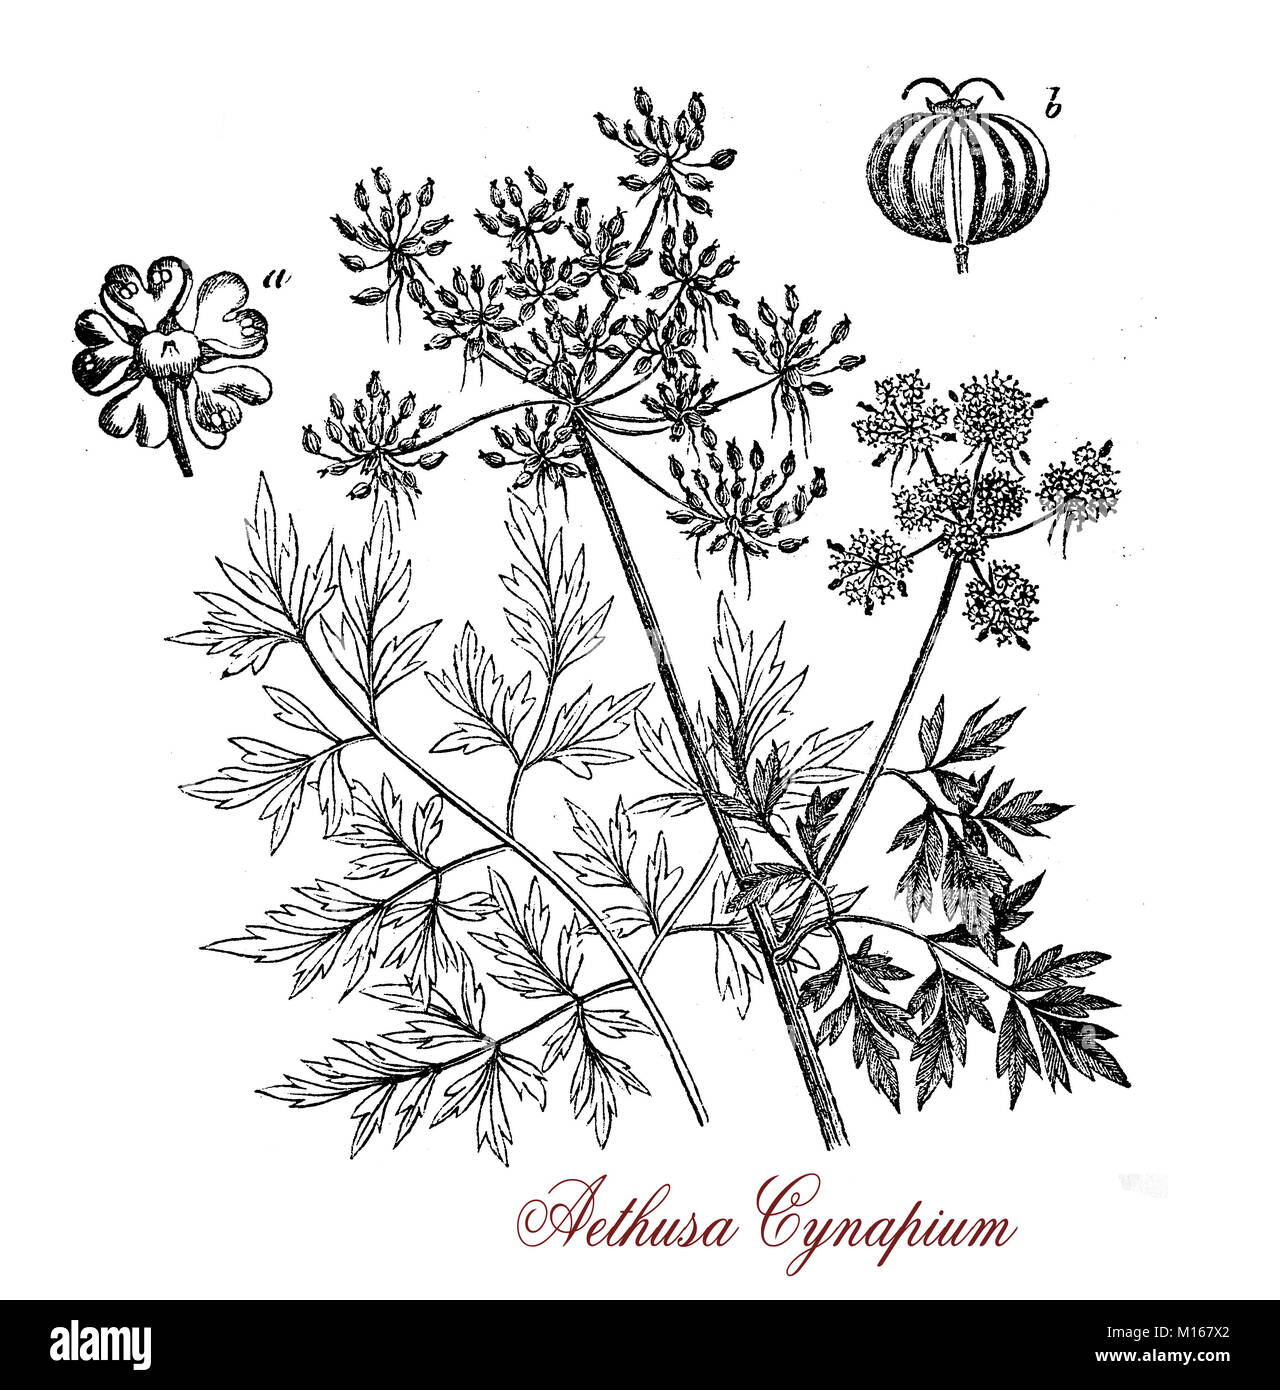 Vintage print of Aethusa cynapium or poison parsley, common poisonous herb with white inflorescences and an unpleasant - Stock Image